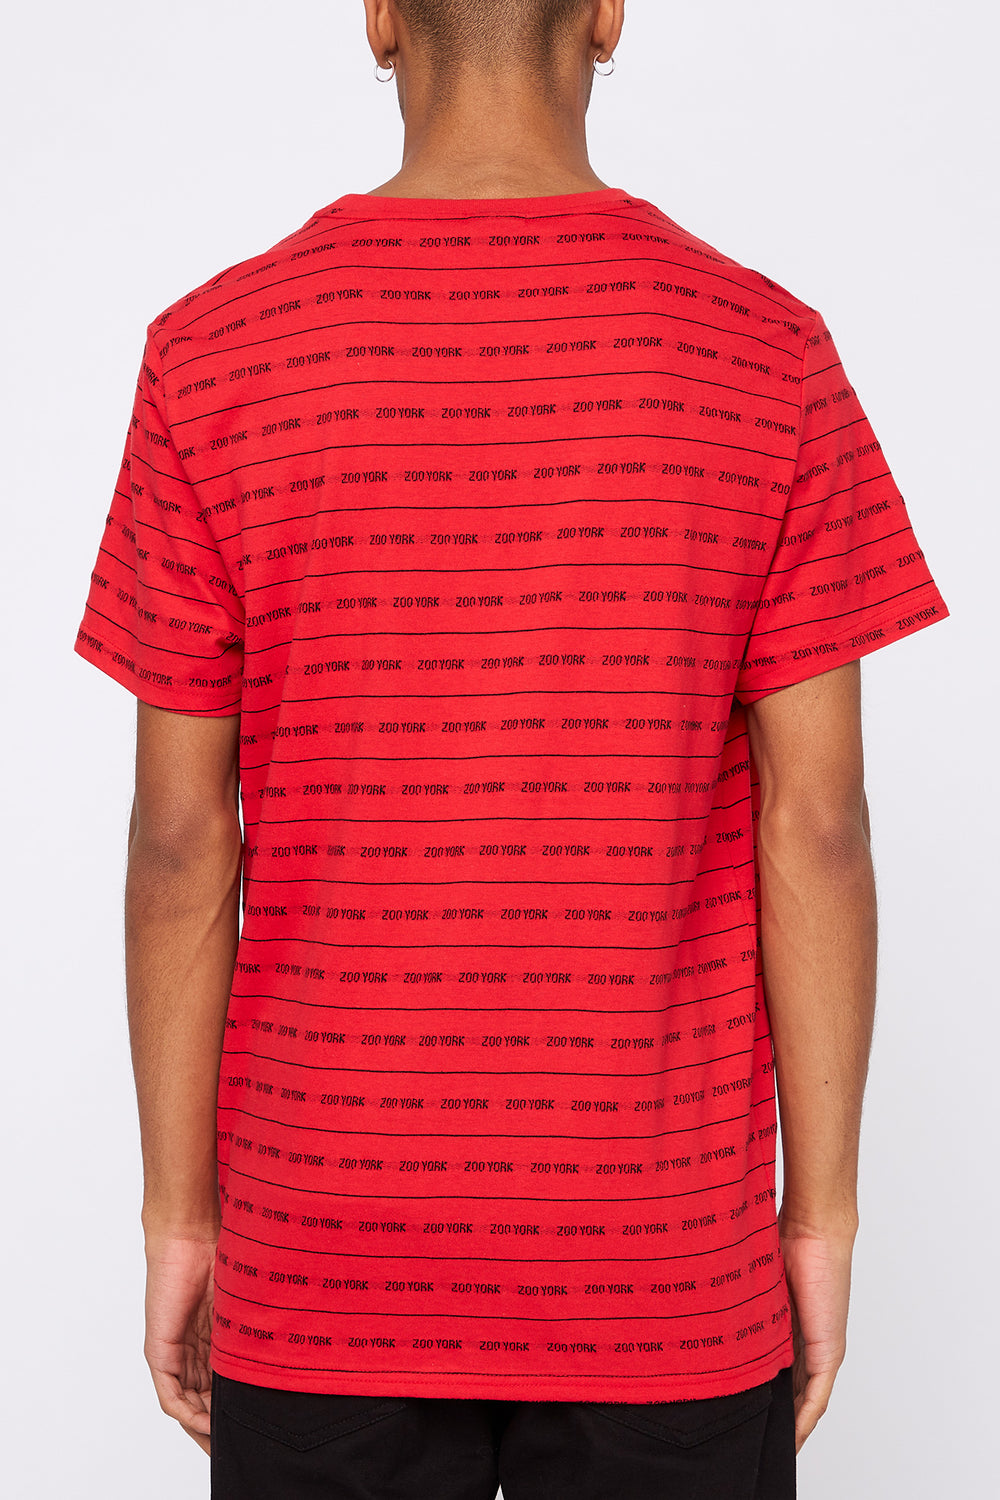 Zoo York Mens Jacquard Striped T-Shirt Red